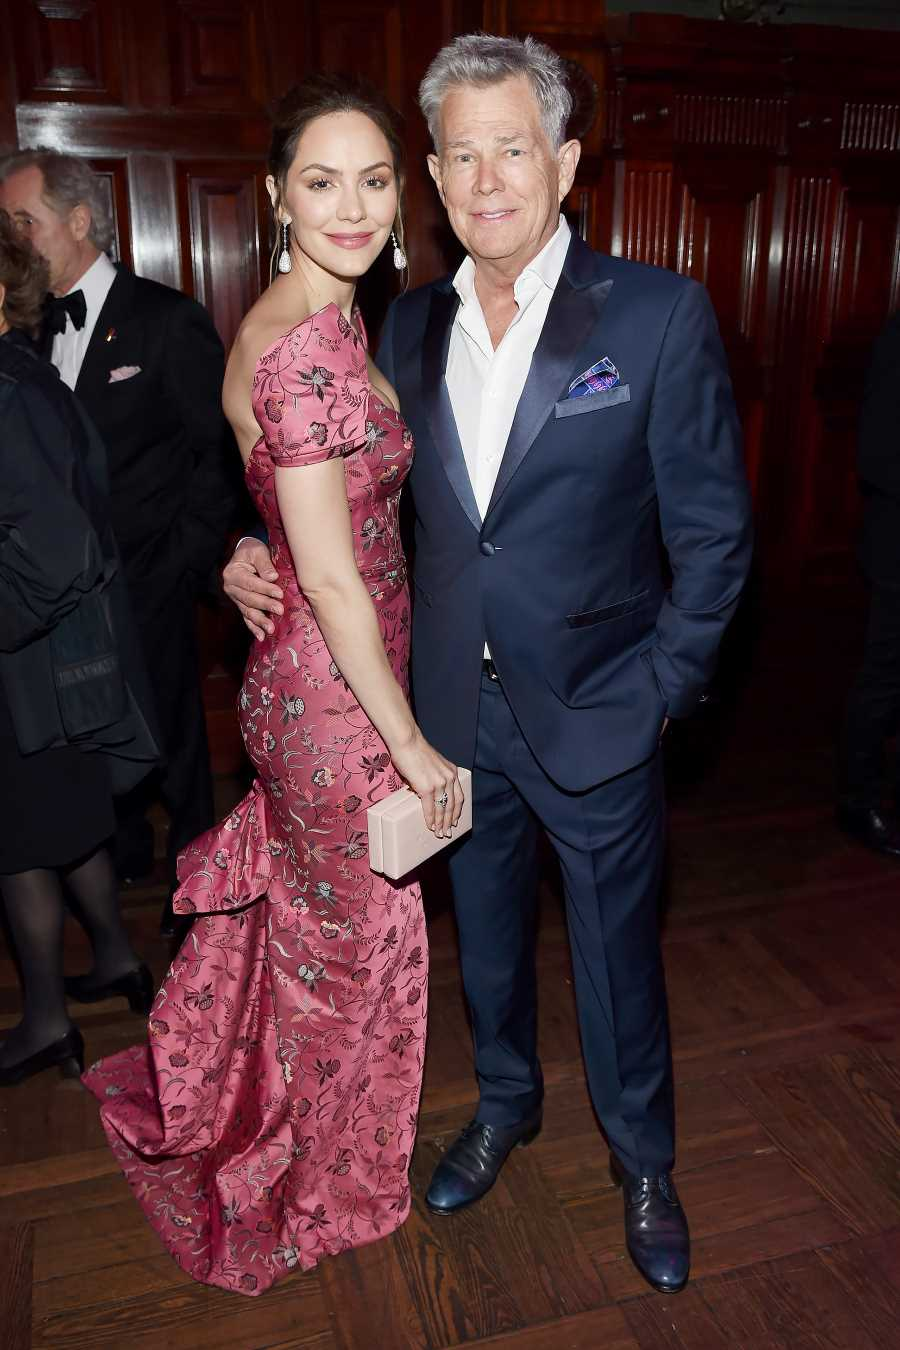 Katharine McPhee Shares Sweet Throwback Video with David Foster Hours Before London Wedding